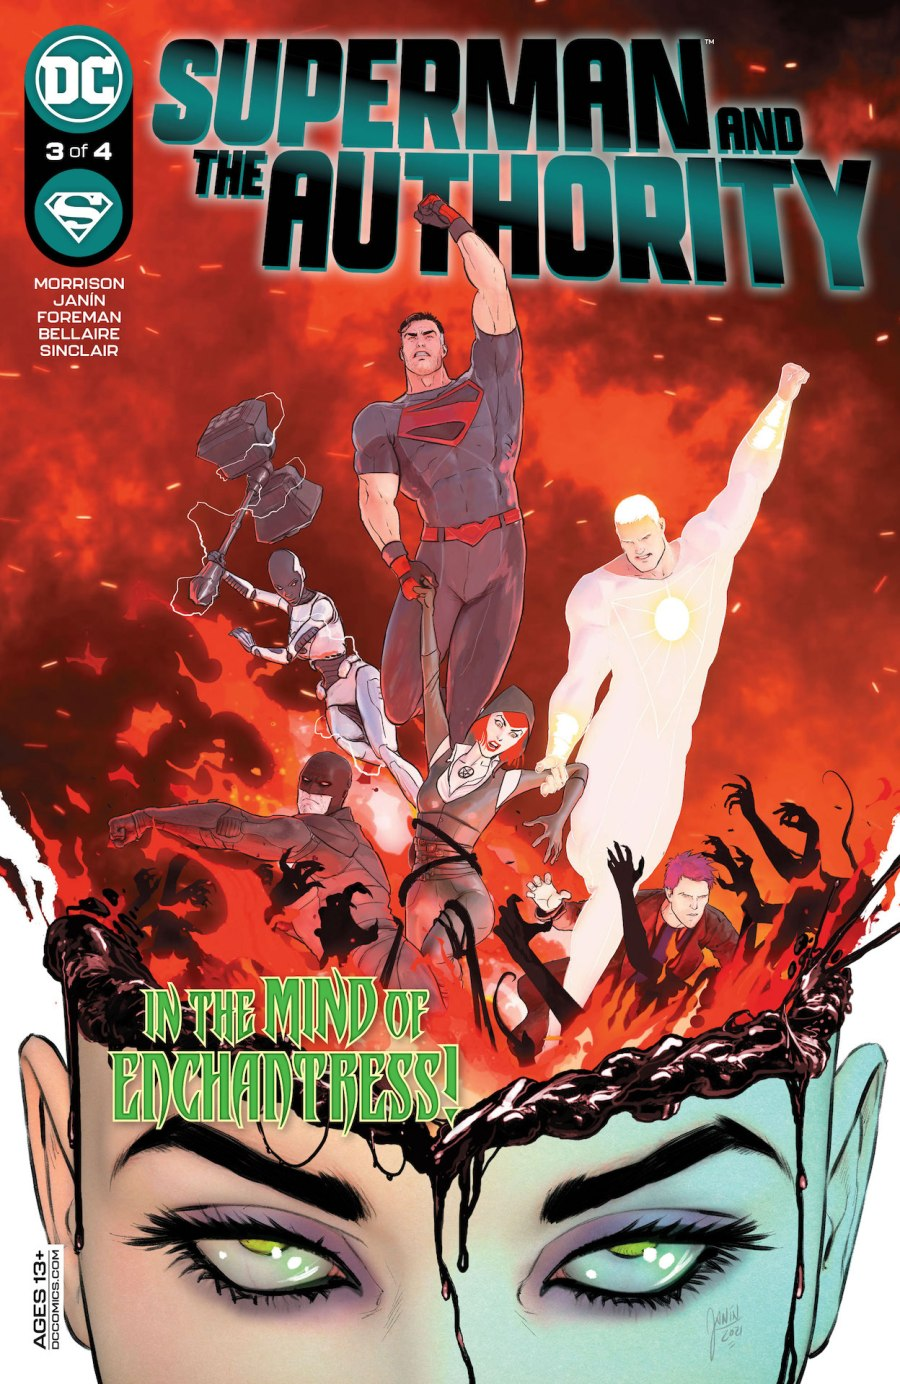 Superman and the Authority #3 Review | The Aspiring Kryptonian